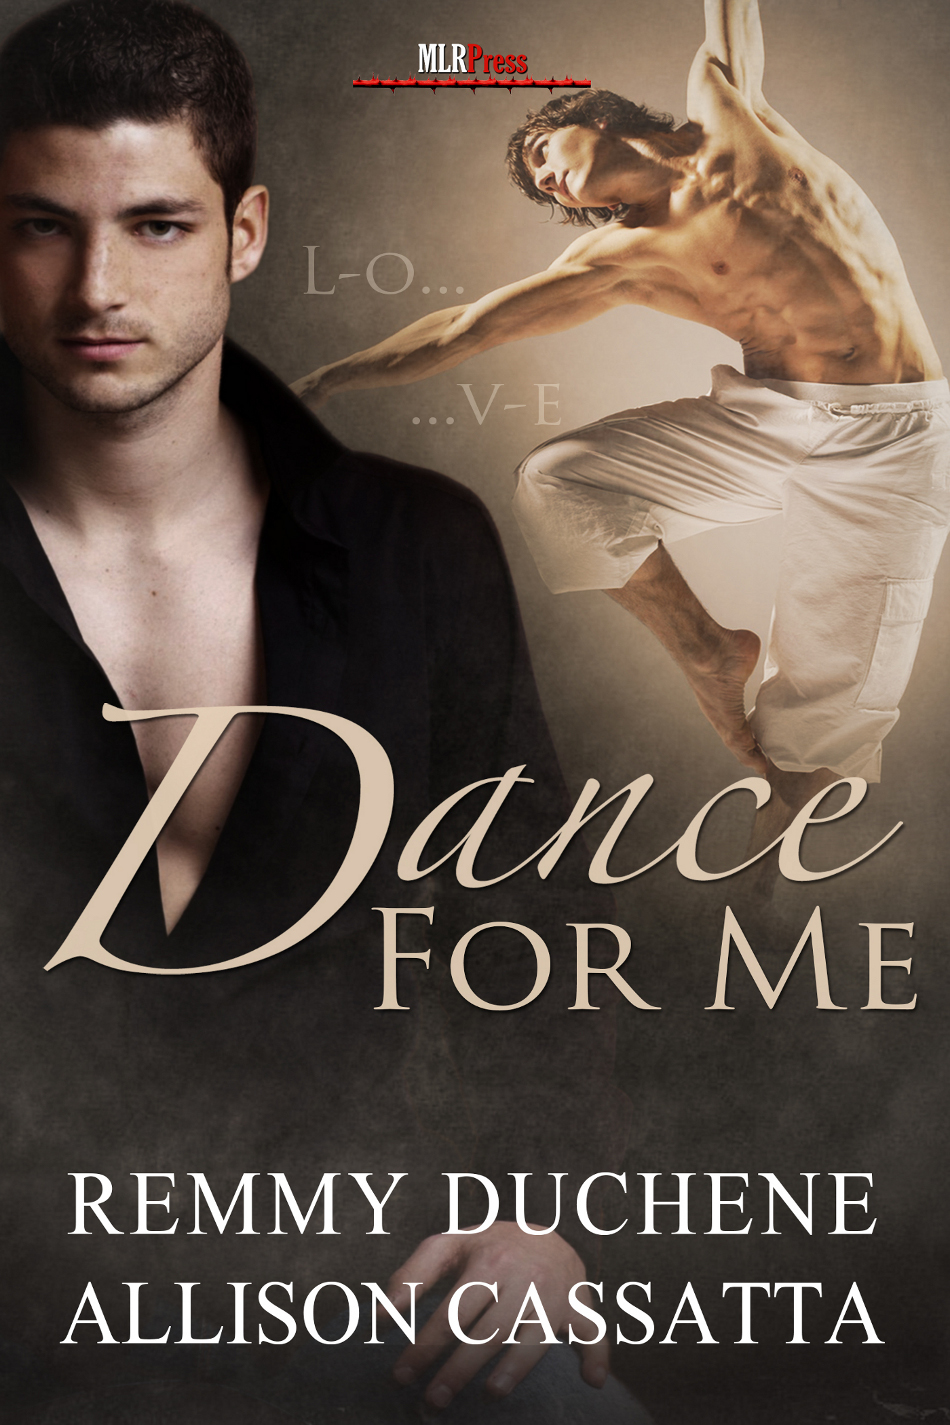 Remmy Duchene  Allison Cassatta - Dance For Me